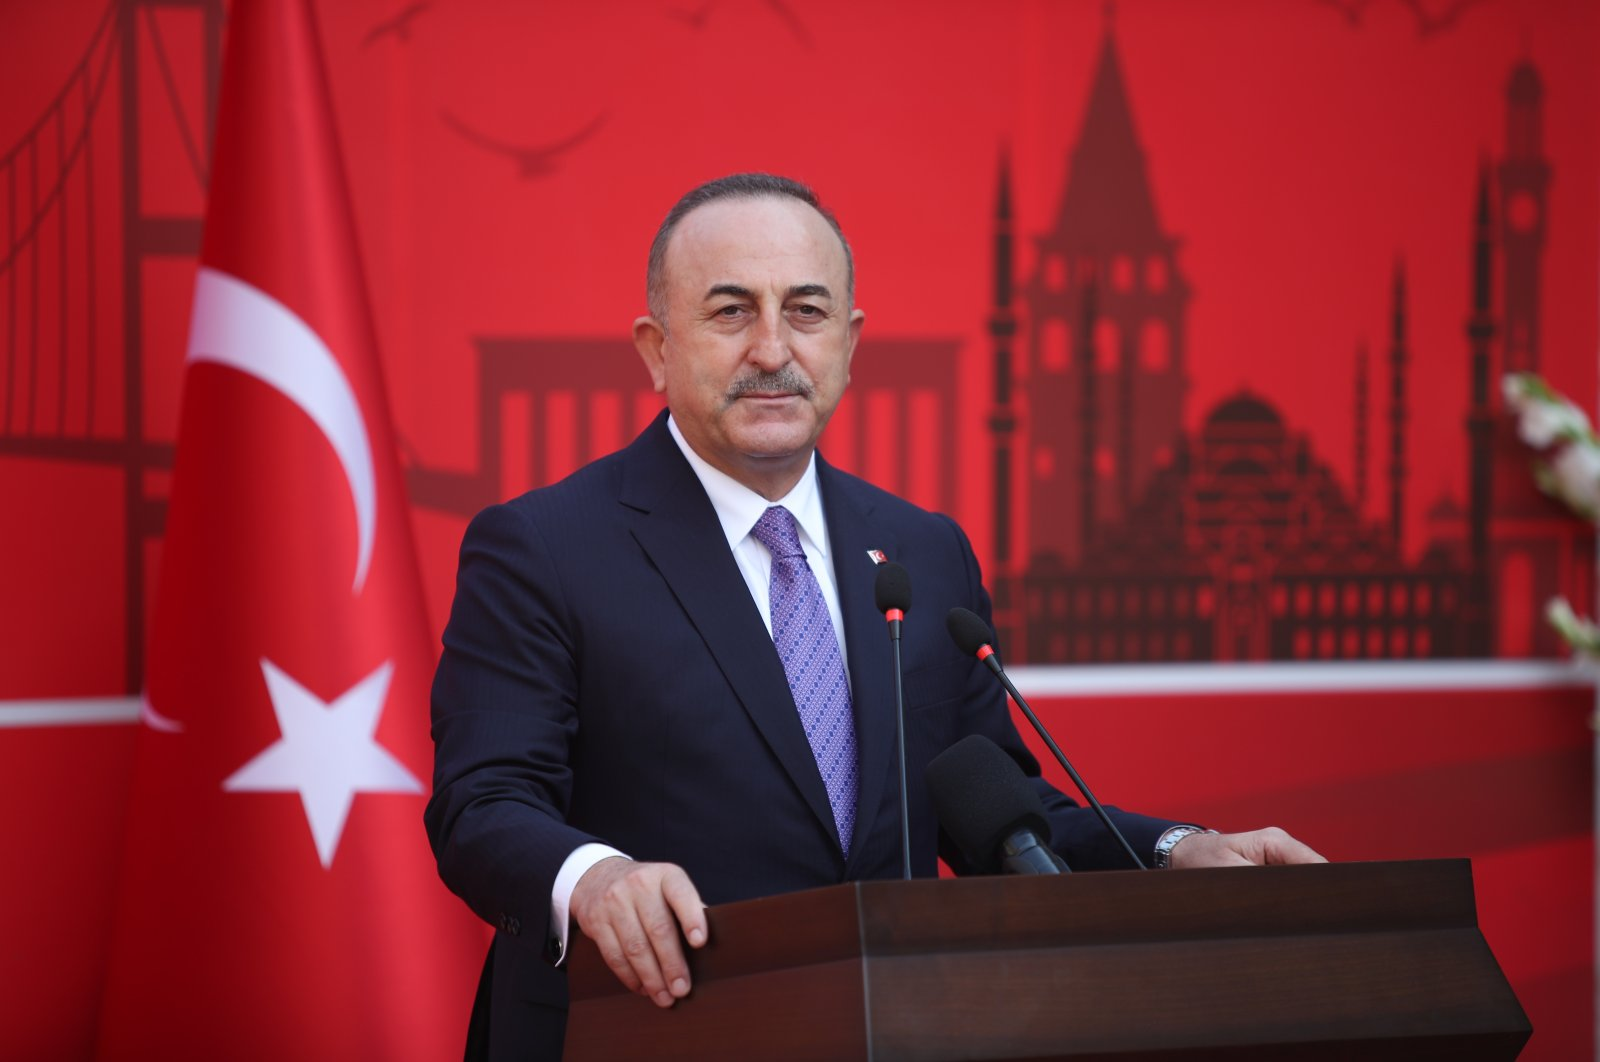 Foreign Minister Mevlüt Çavuşoğlu speaks at the opening ceremony of Turkey's Consulate in Karachi, Pakistan, Jan. 14, 2021 (AA Photo)